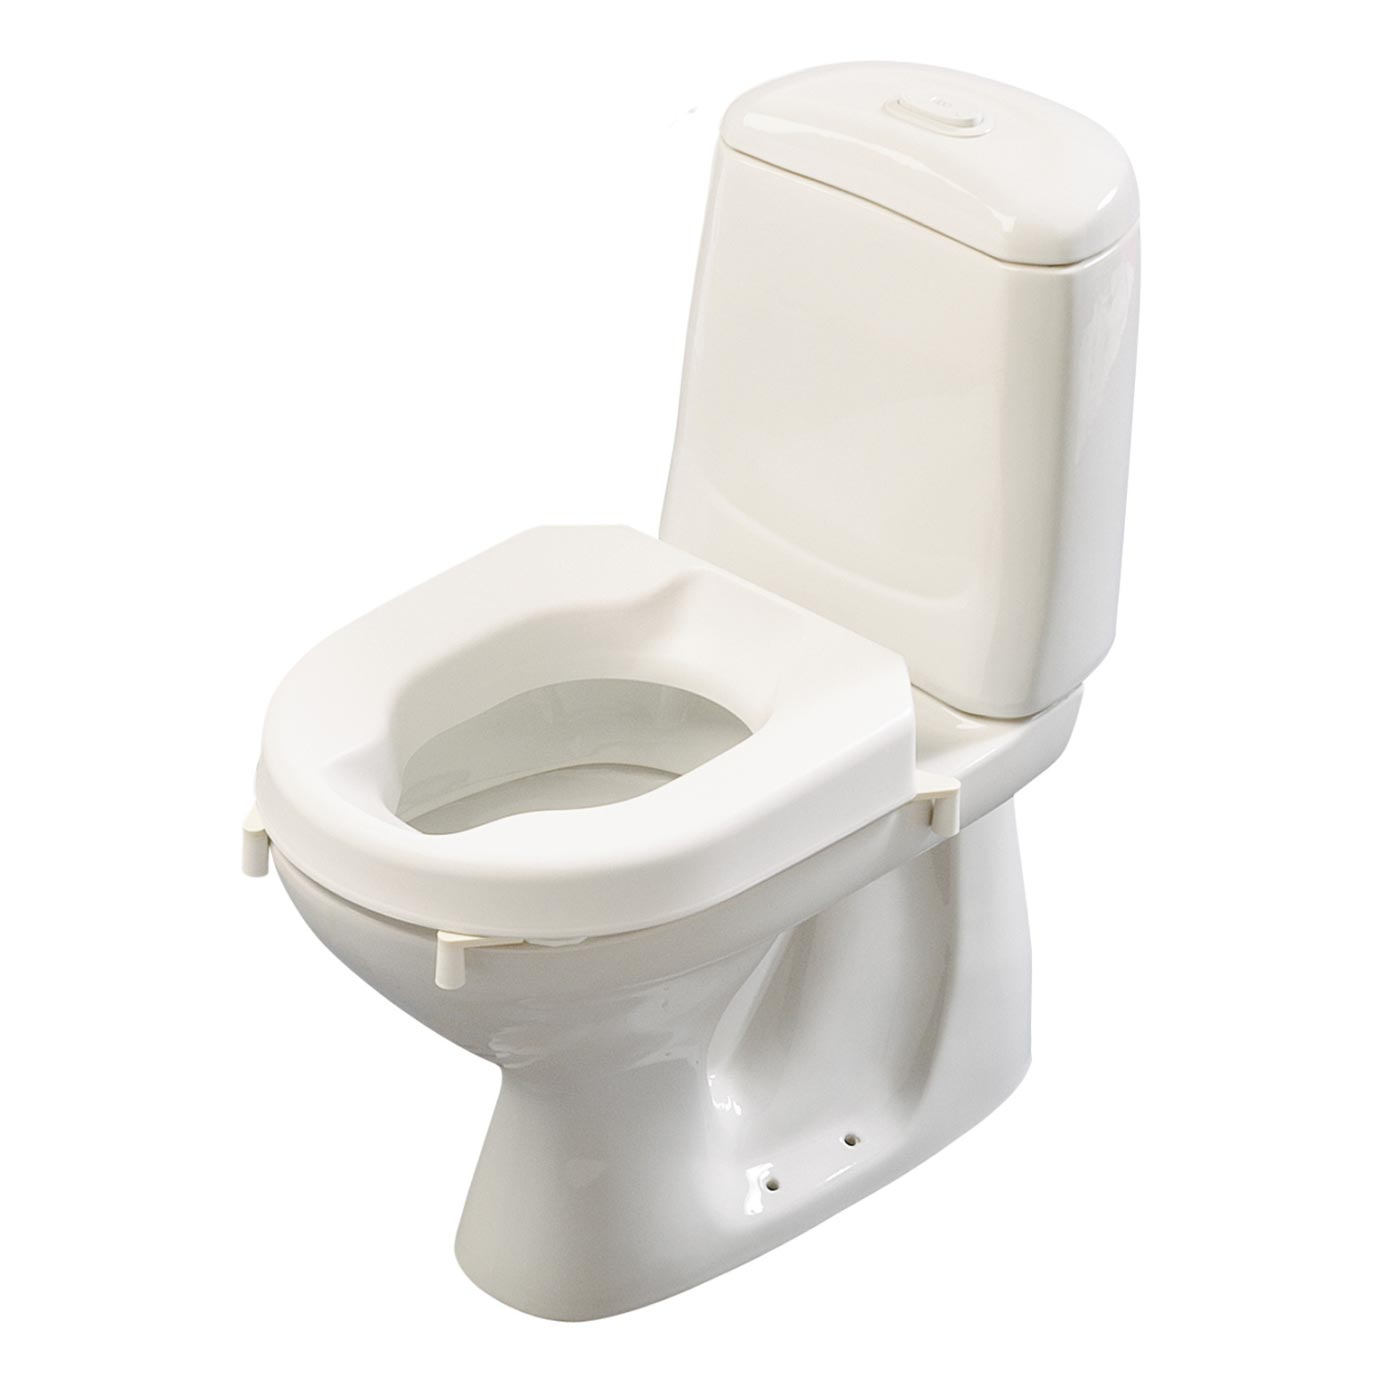 Etac Hi-Loo toilet seat raiser with brackets